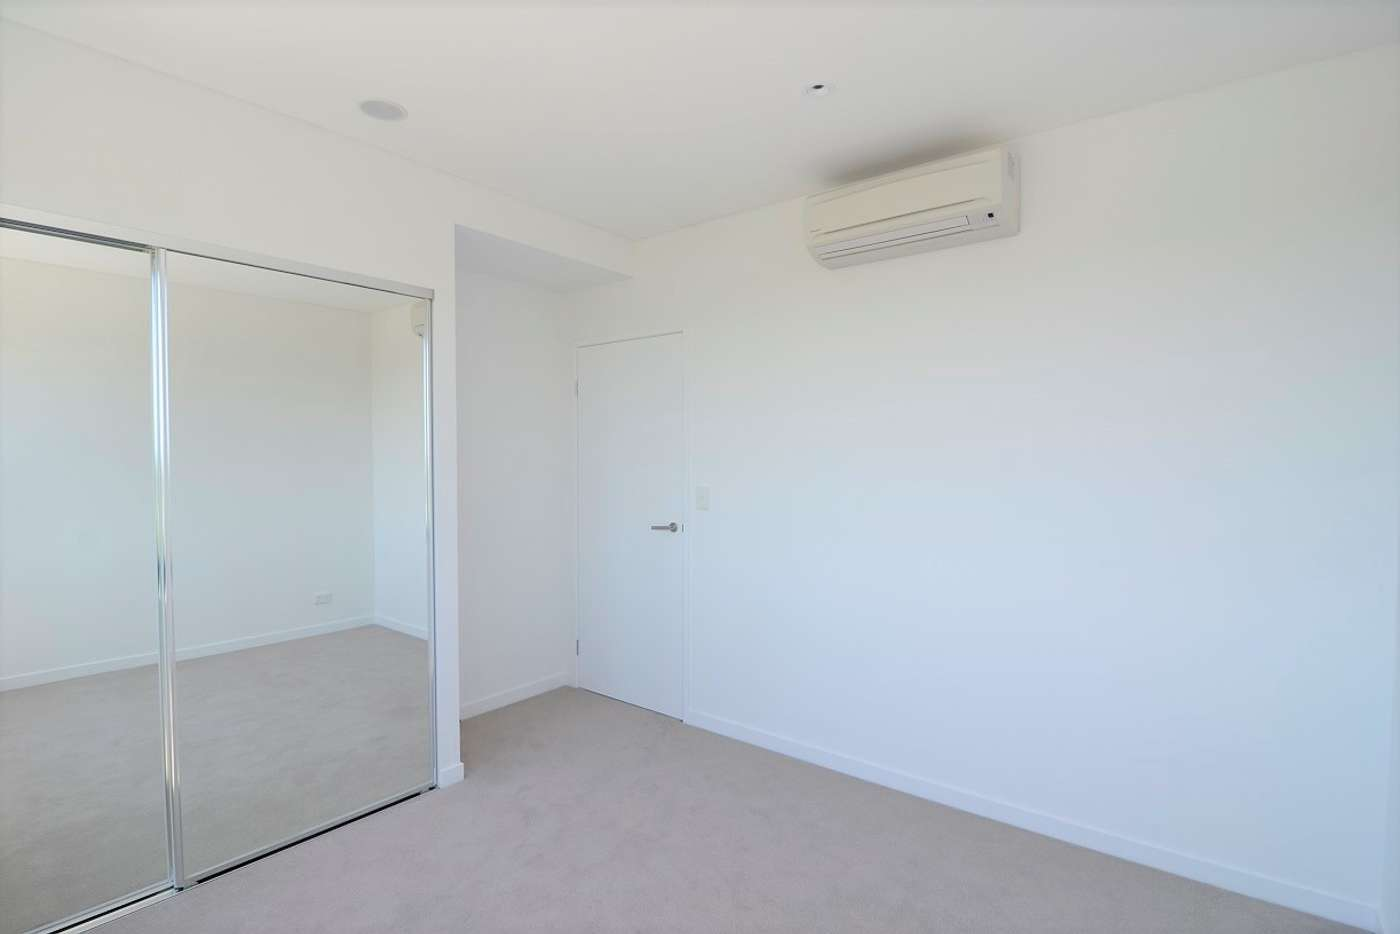 Fifth view of Homely apartment listing, 10615/320 MacArthur Ave, Hamilton QLD 4007